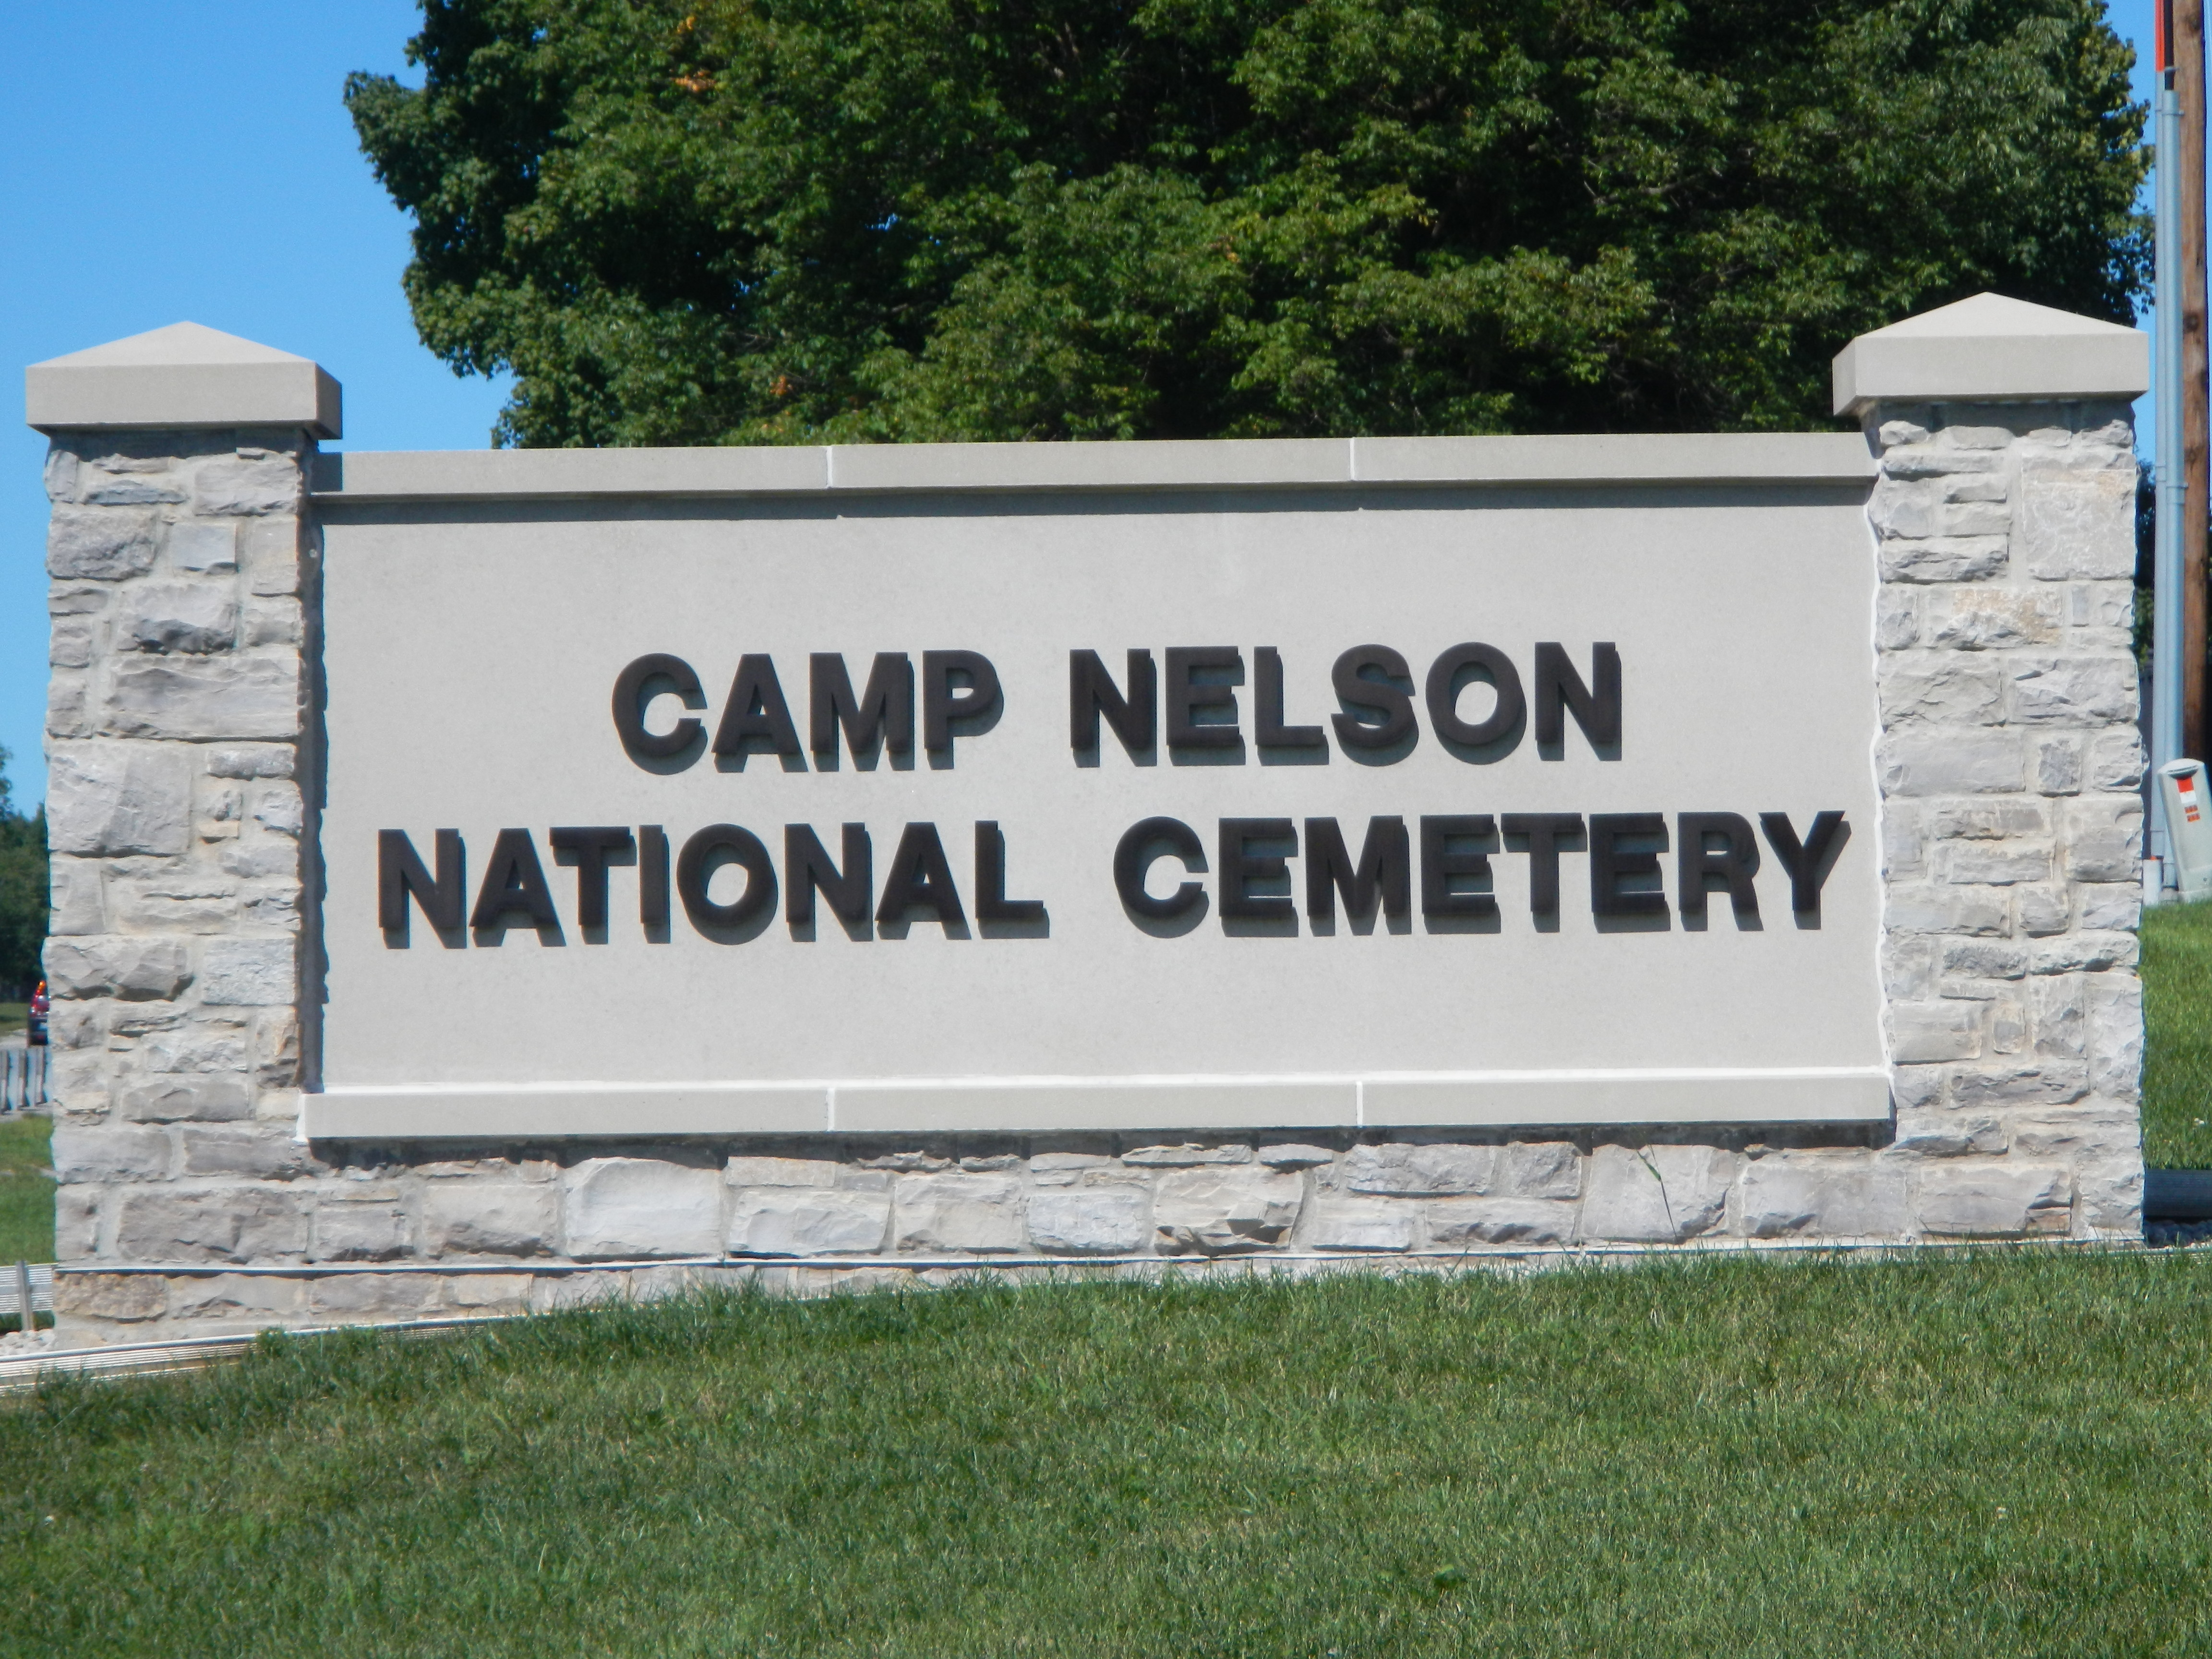 camp nelson See new listings in camp nelson, ca right here at realtorcom® check out homes for sale, foreclosures, rentals and more avialable properties.